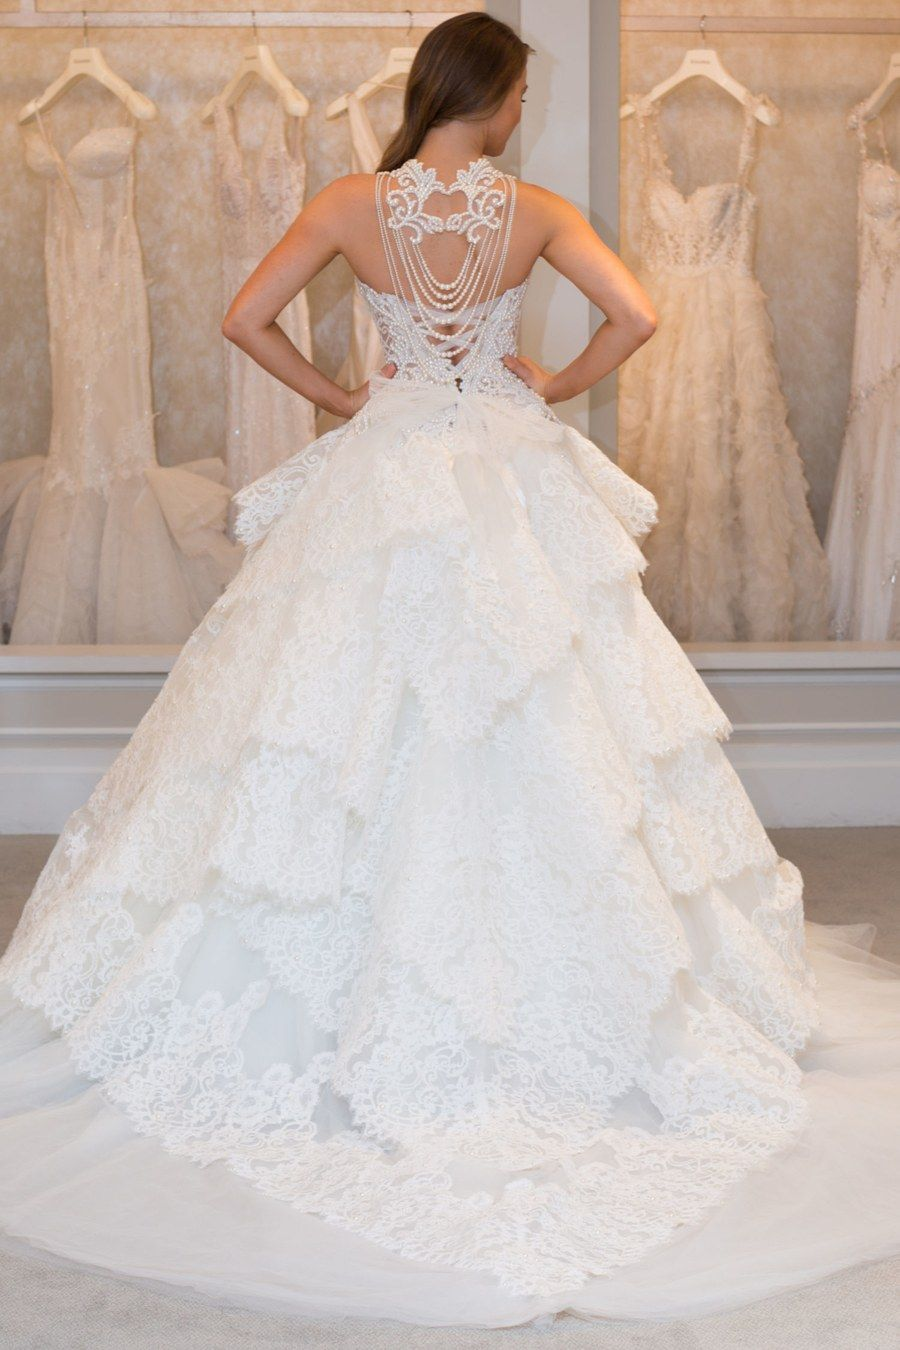 New Pnina Tornai Wedding Dresses See A Real Bride Model 6 Hot Off The Runway Gowns Glamour Ball Gown Wedding Dress Wedding Dresses Wedding Dresses Taffeta